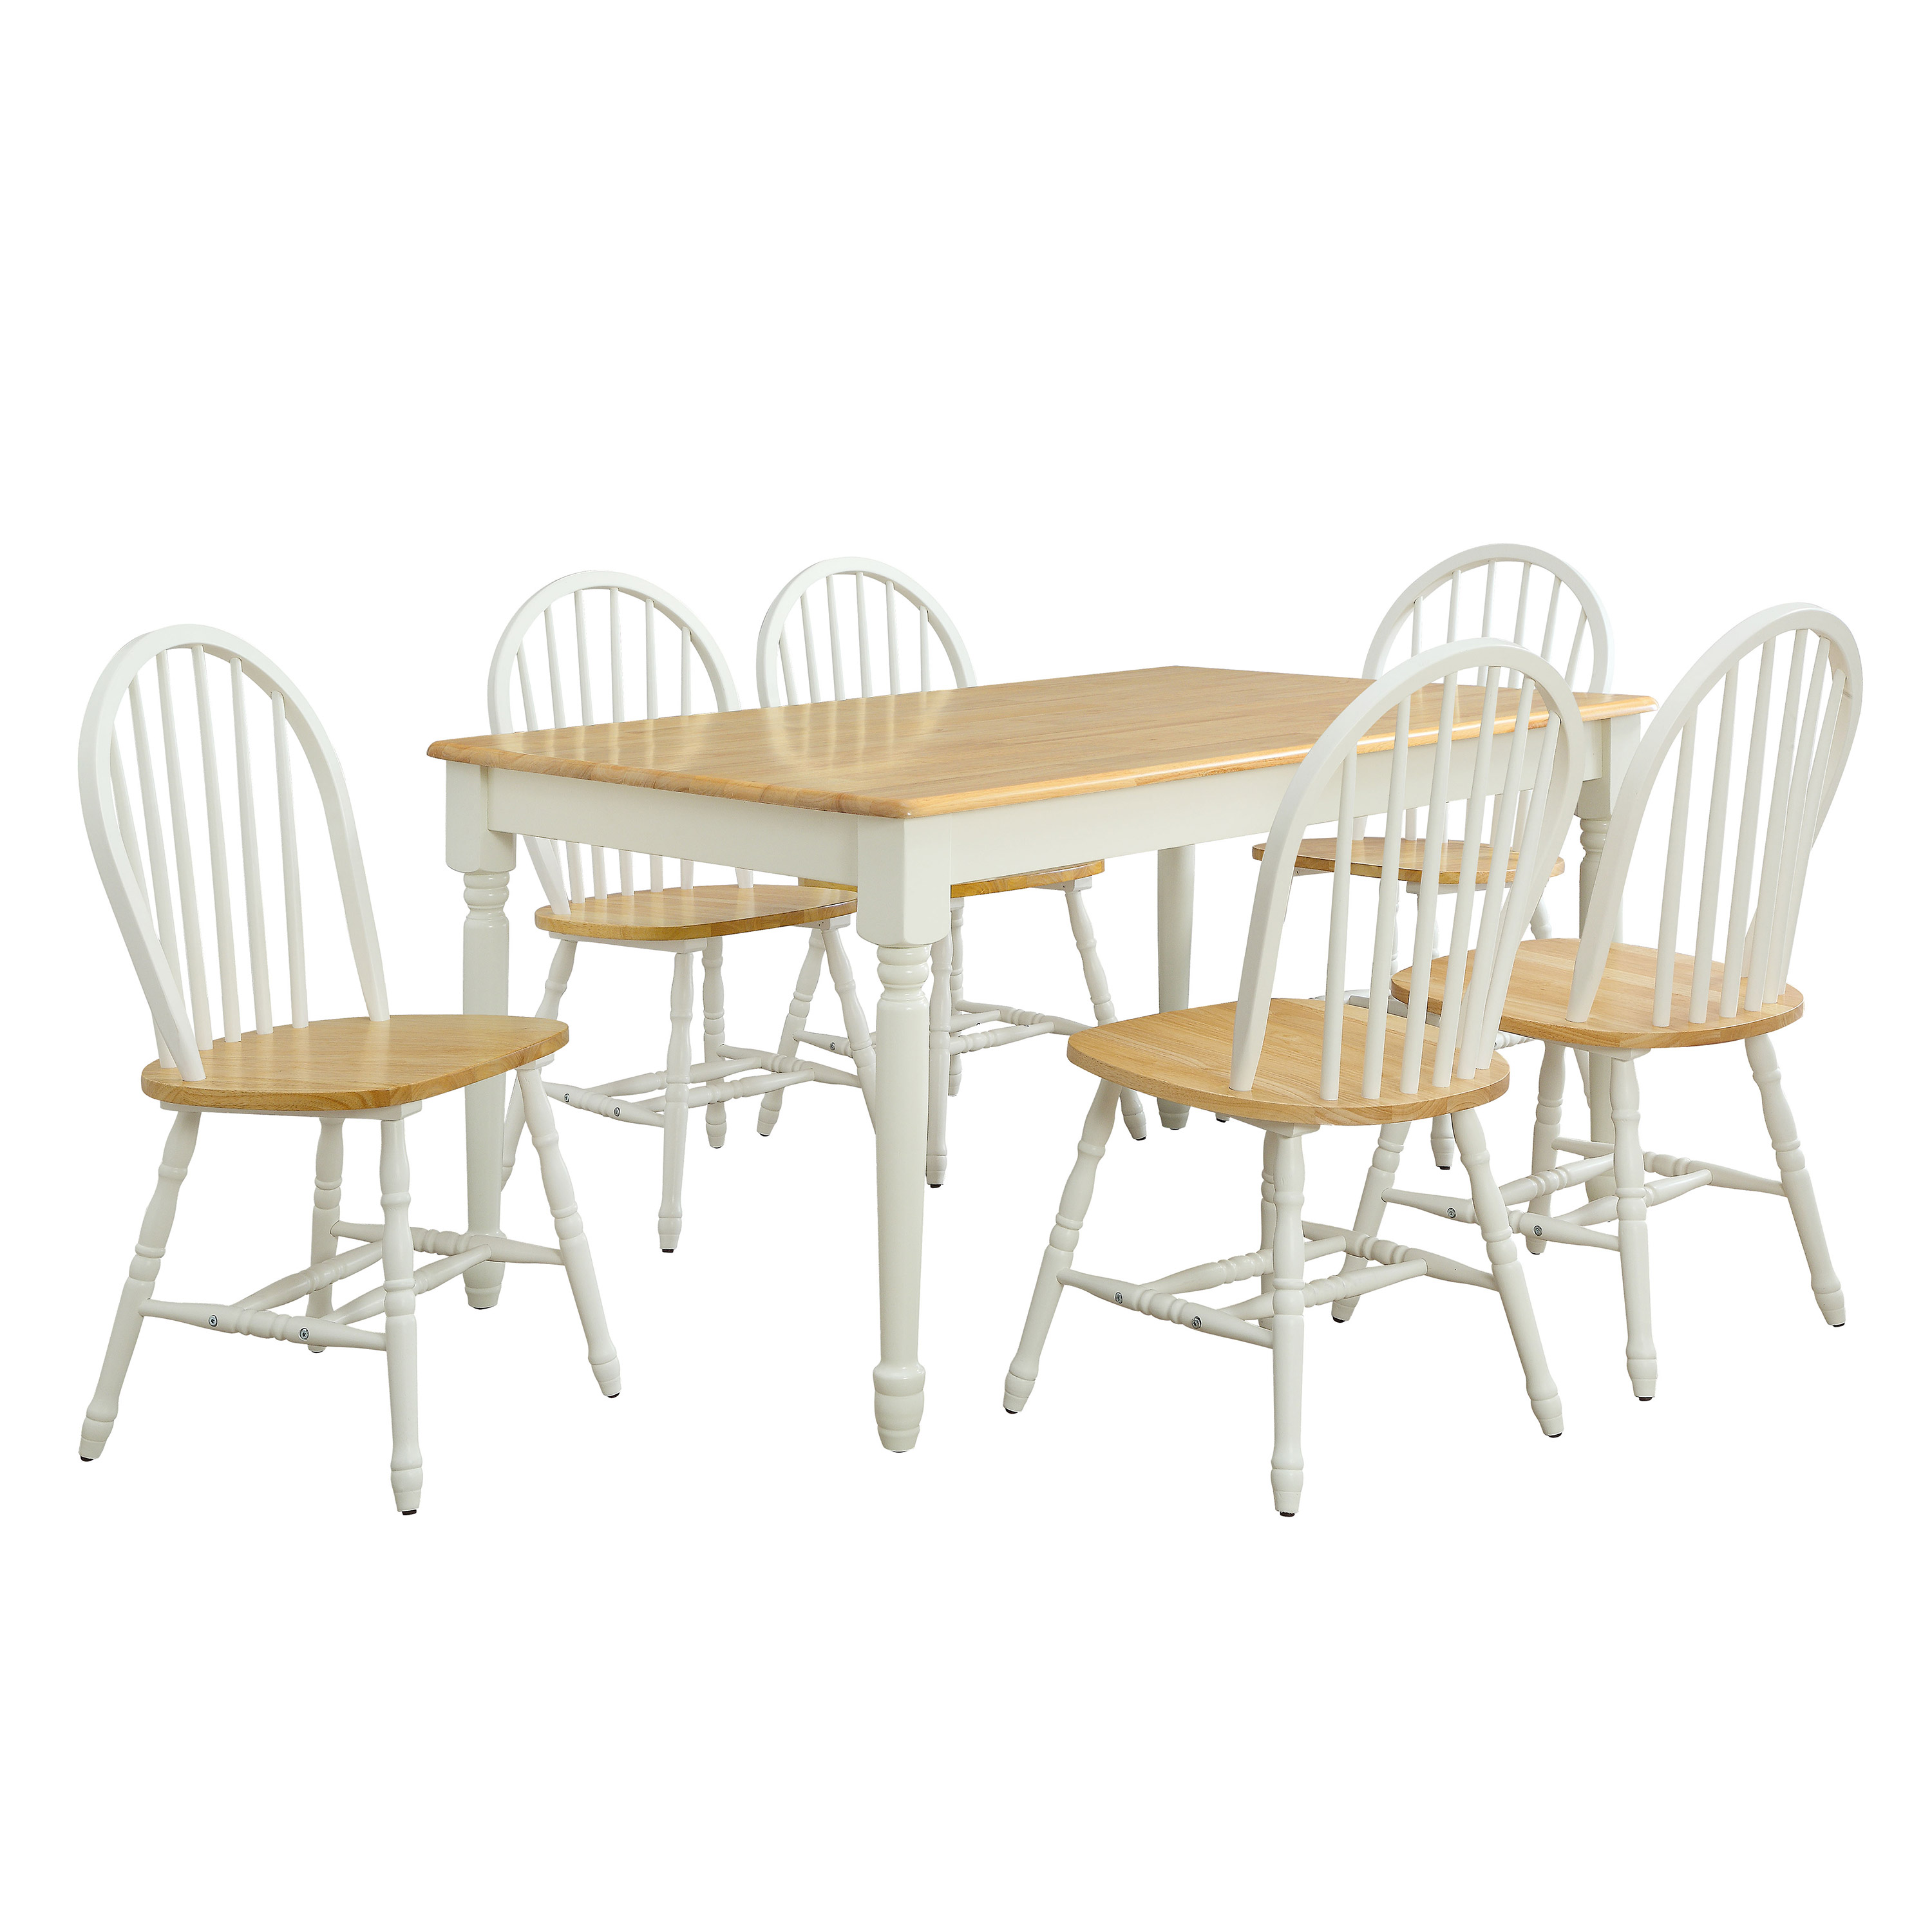 Chairs Kitchen White And Natural Windsor Chairs Dining Room Kitchen Home